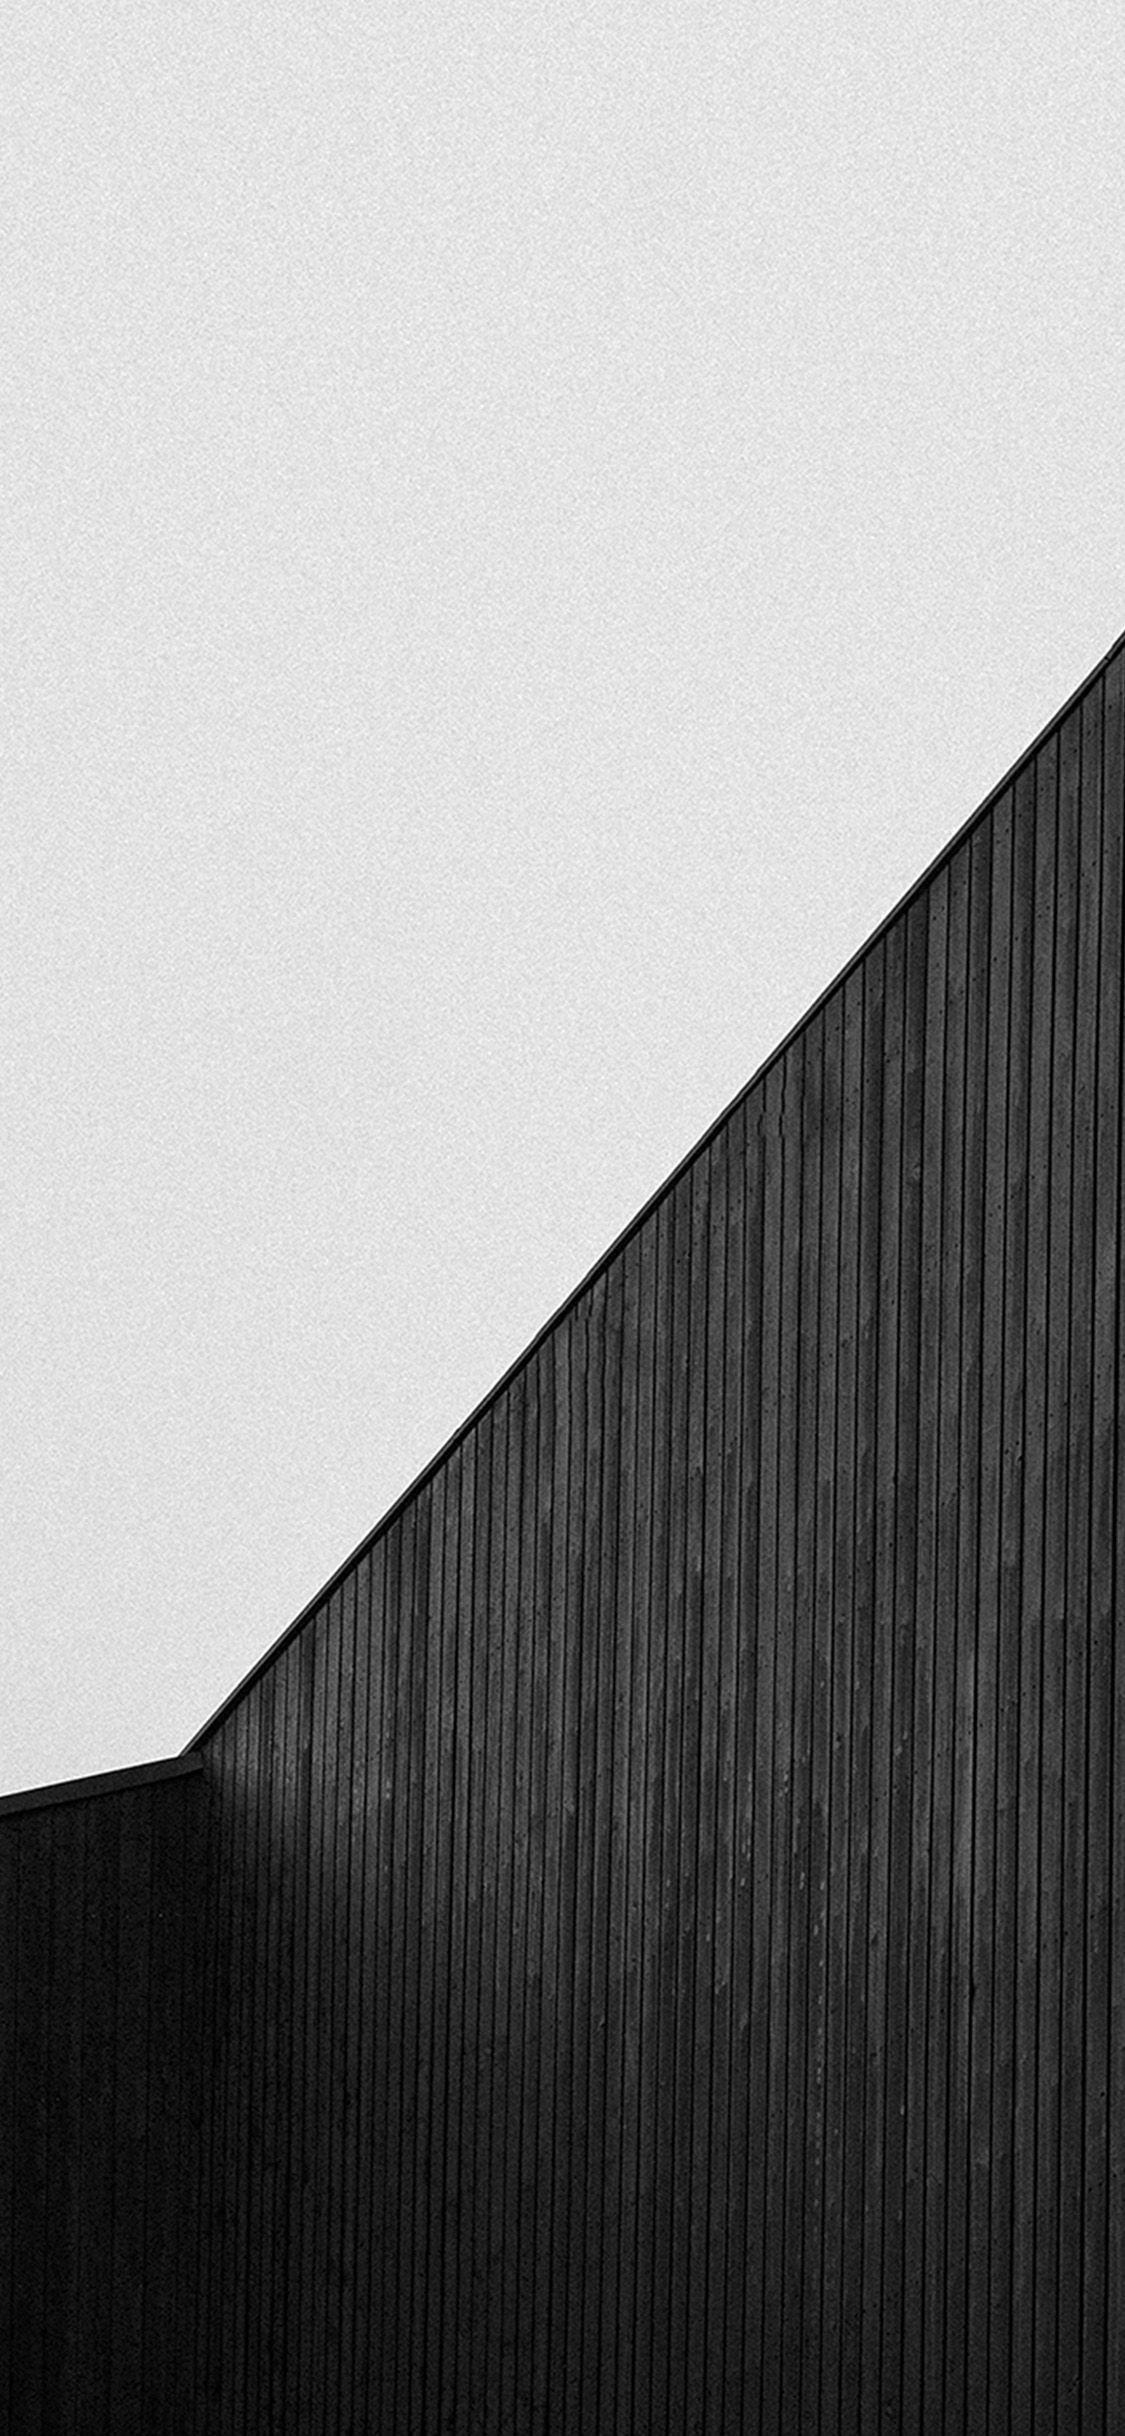 Iphone Wallpapers · Backrounds · vz02-simple-wall-bw-dark-pattern-background via http: